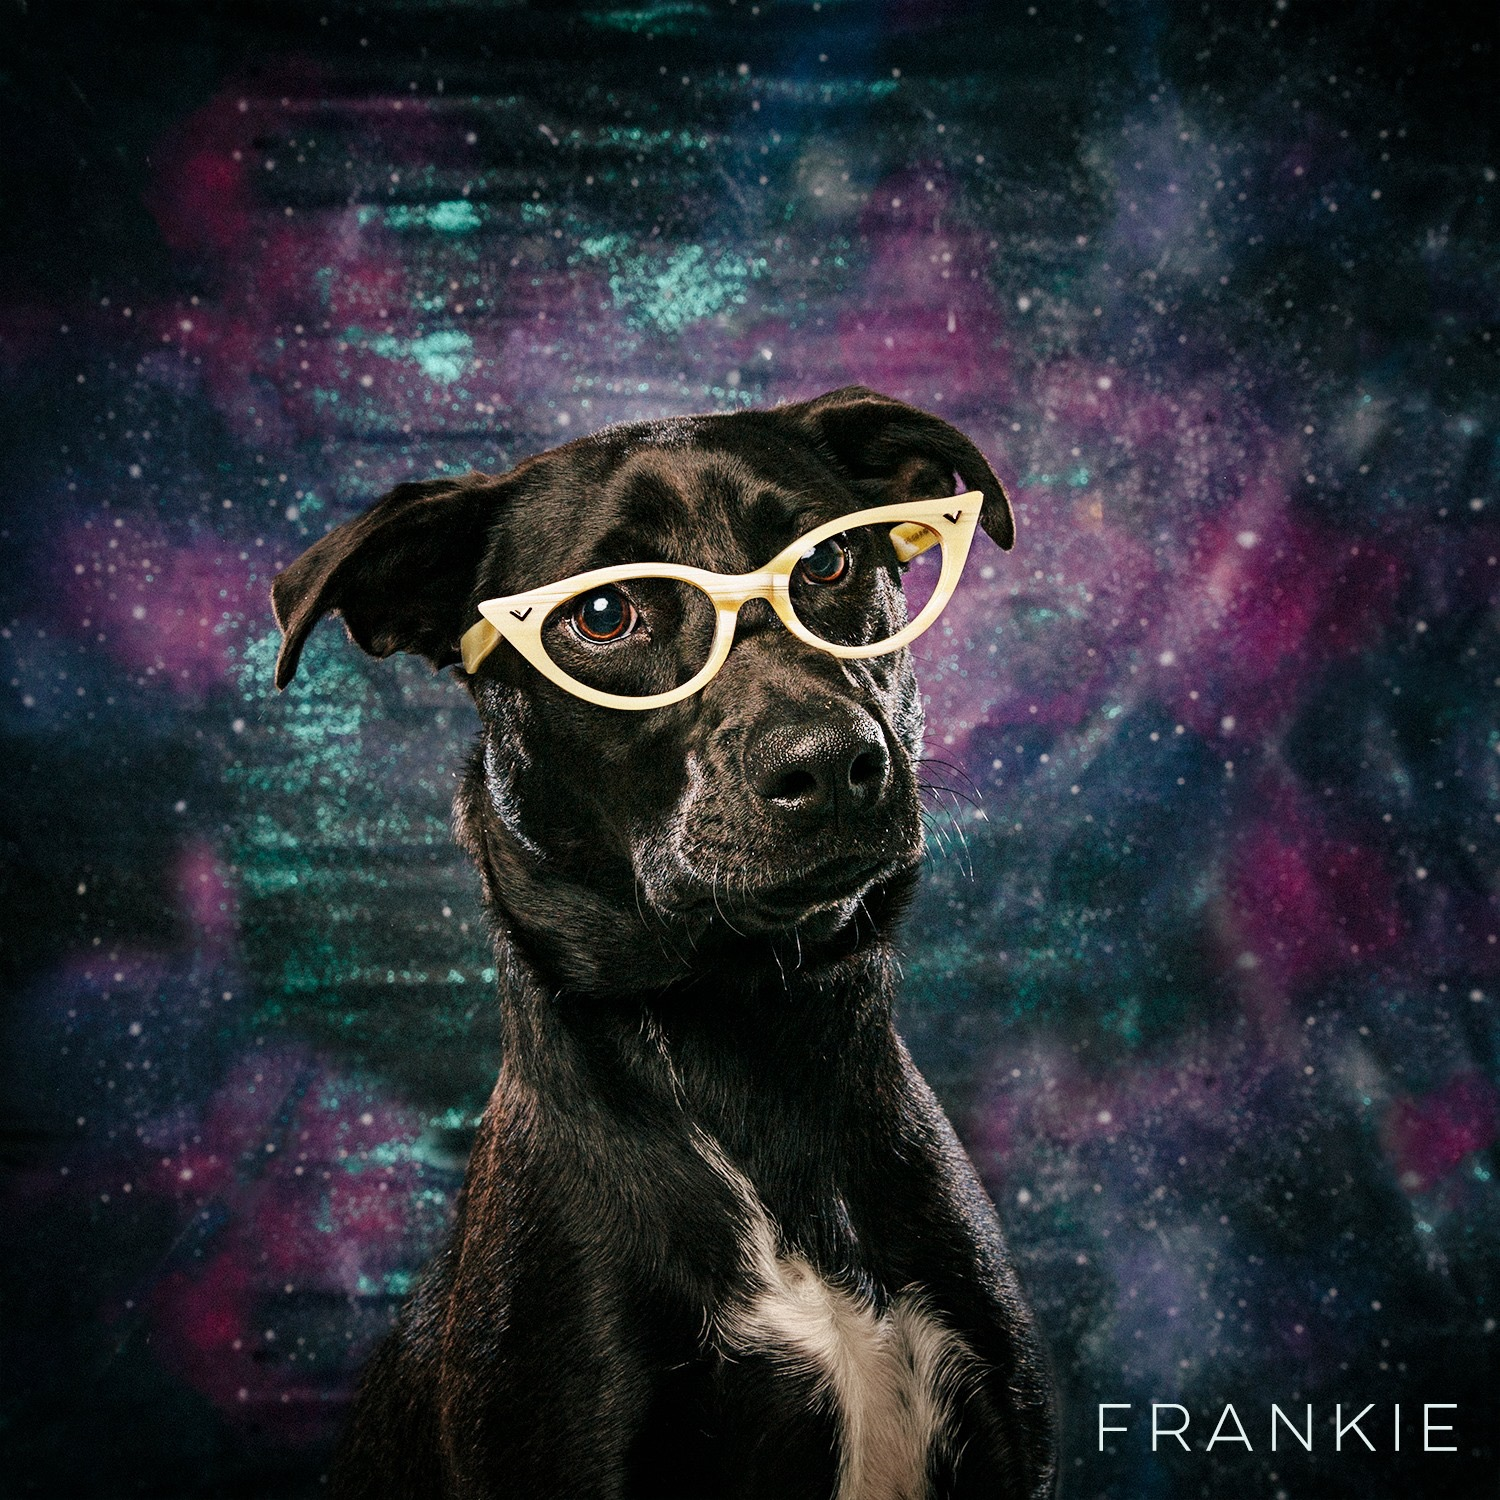 Arouty Galaxy Houston Adoptable Dog in Glasses Cat Eyes